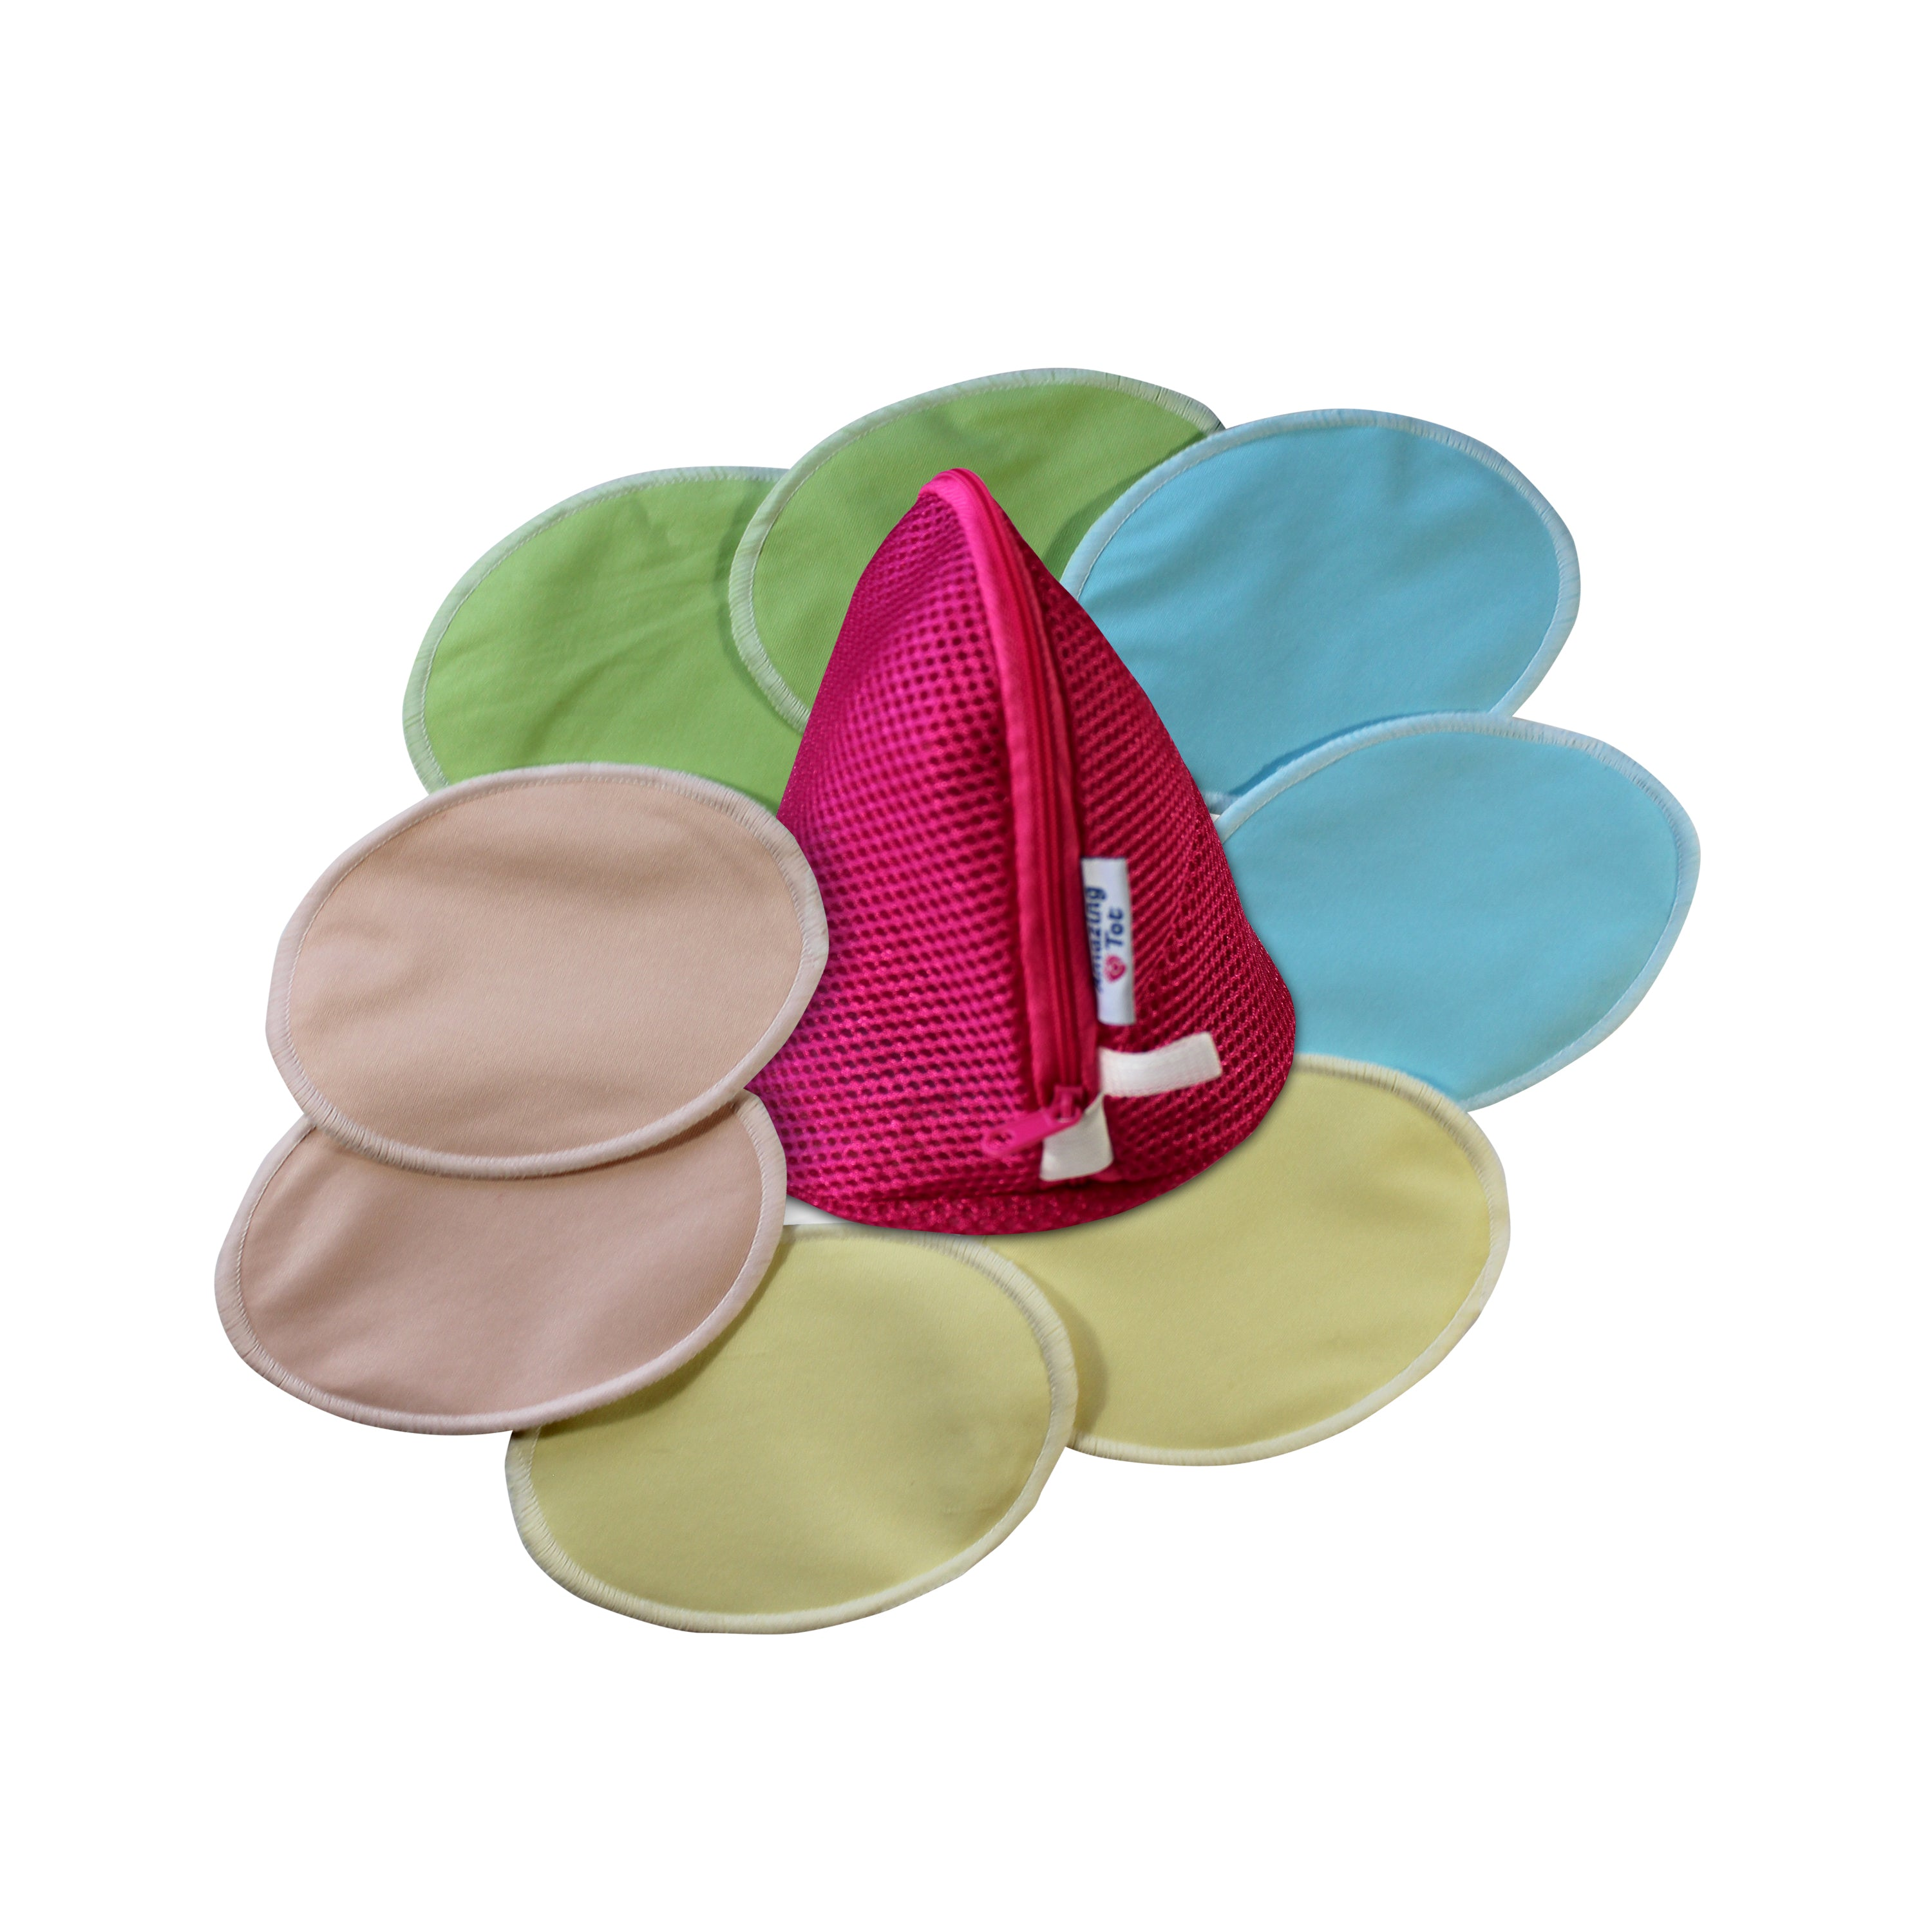 Reusable Organic Bamboo Breast Nursing Pads Washable Waterproof Ultra Soft 8pcs